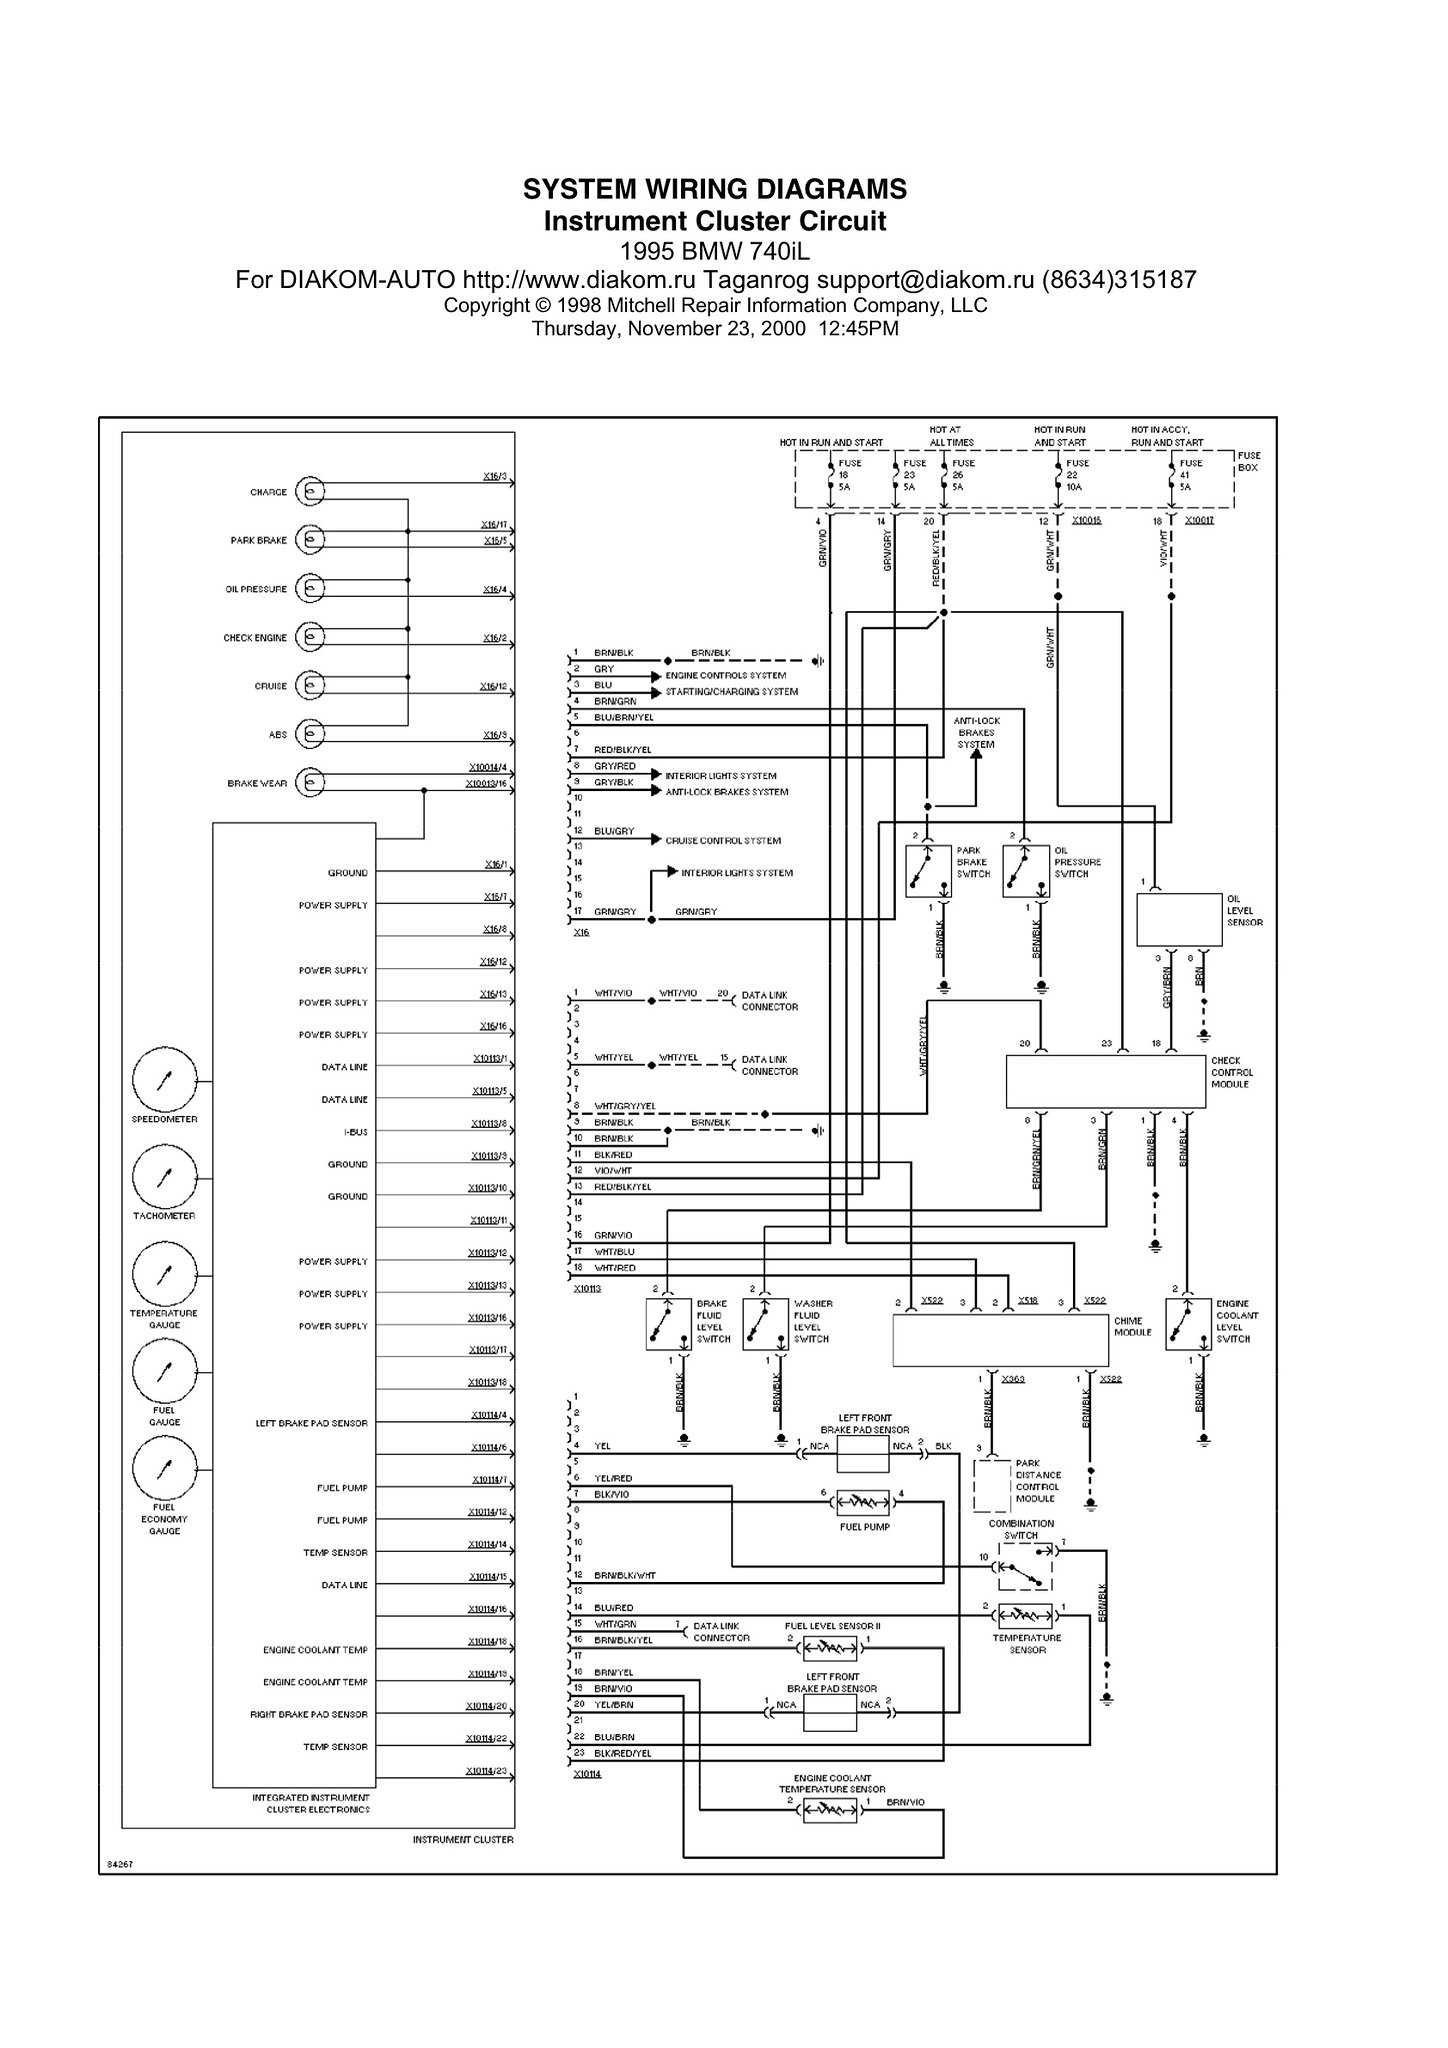 7703585142_dbc4ceb414_k bmw e39 wiring diagrams 1998 740i heated seat wiring diagram 2004 bmw 530i wiring diagrams at gsmx.co